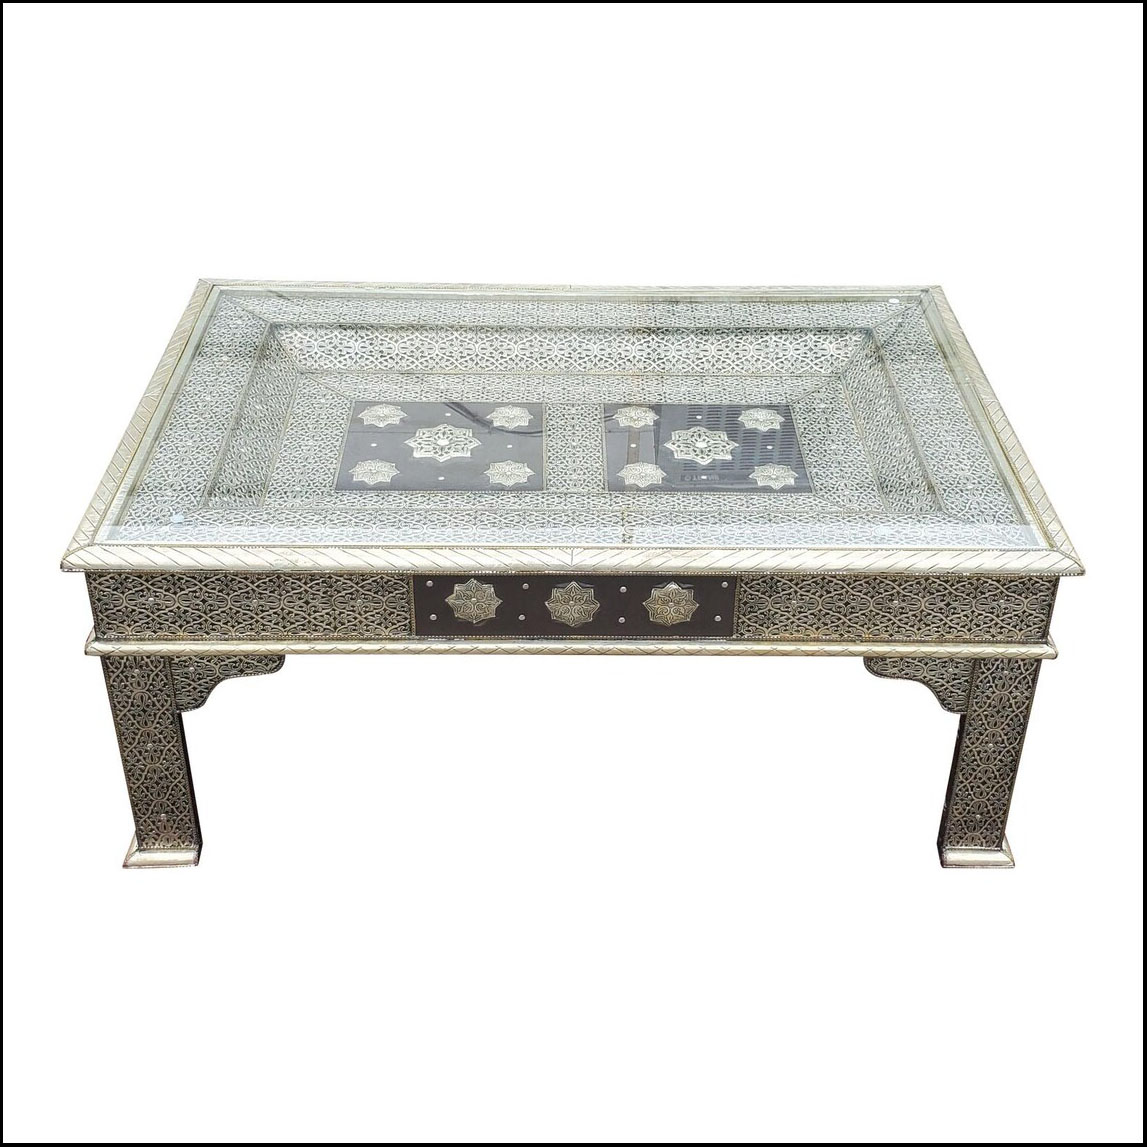 Moroccan Metal Inlaid Coffee Table, Silver Look